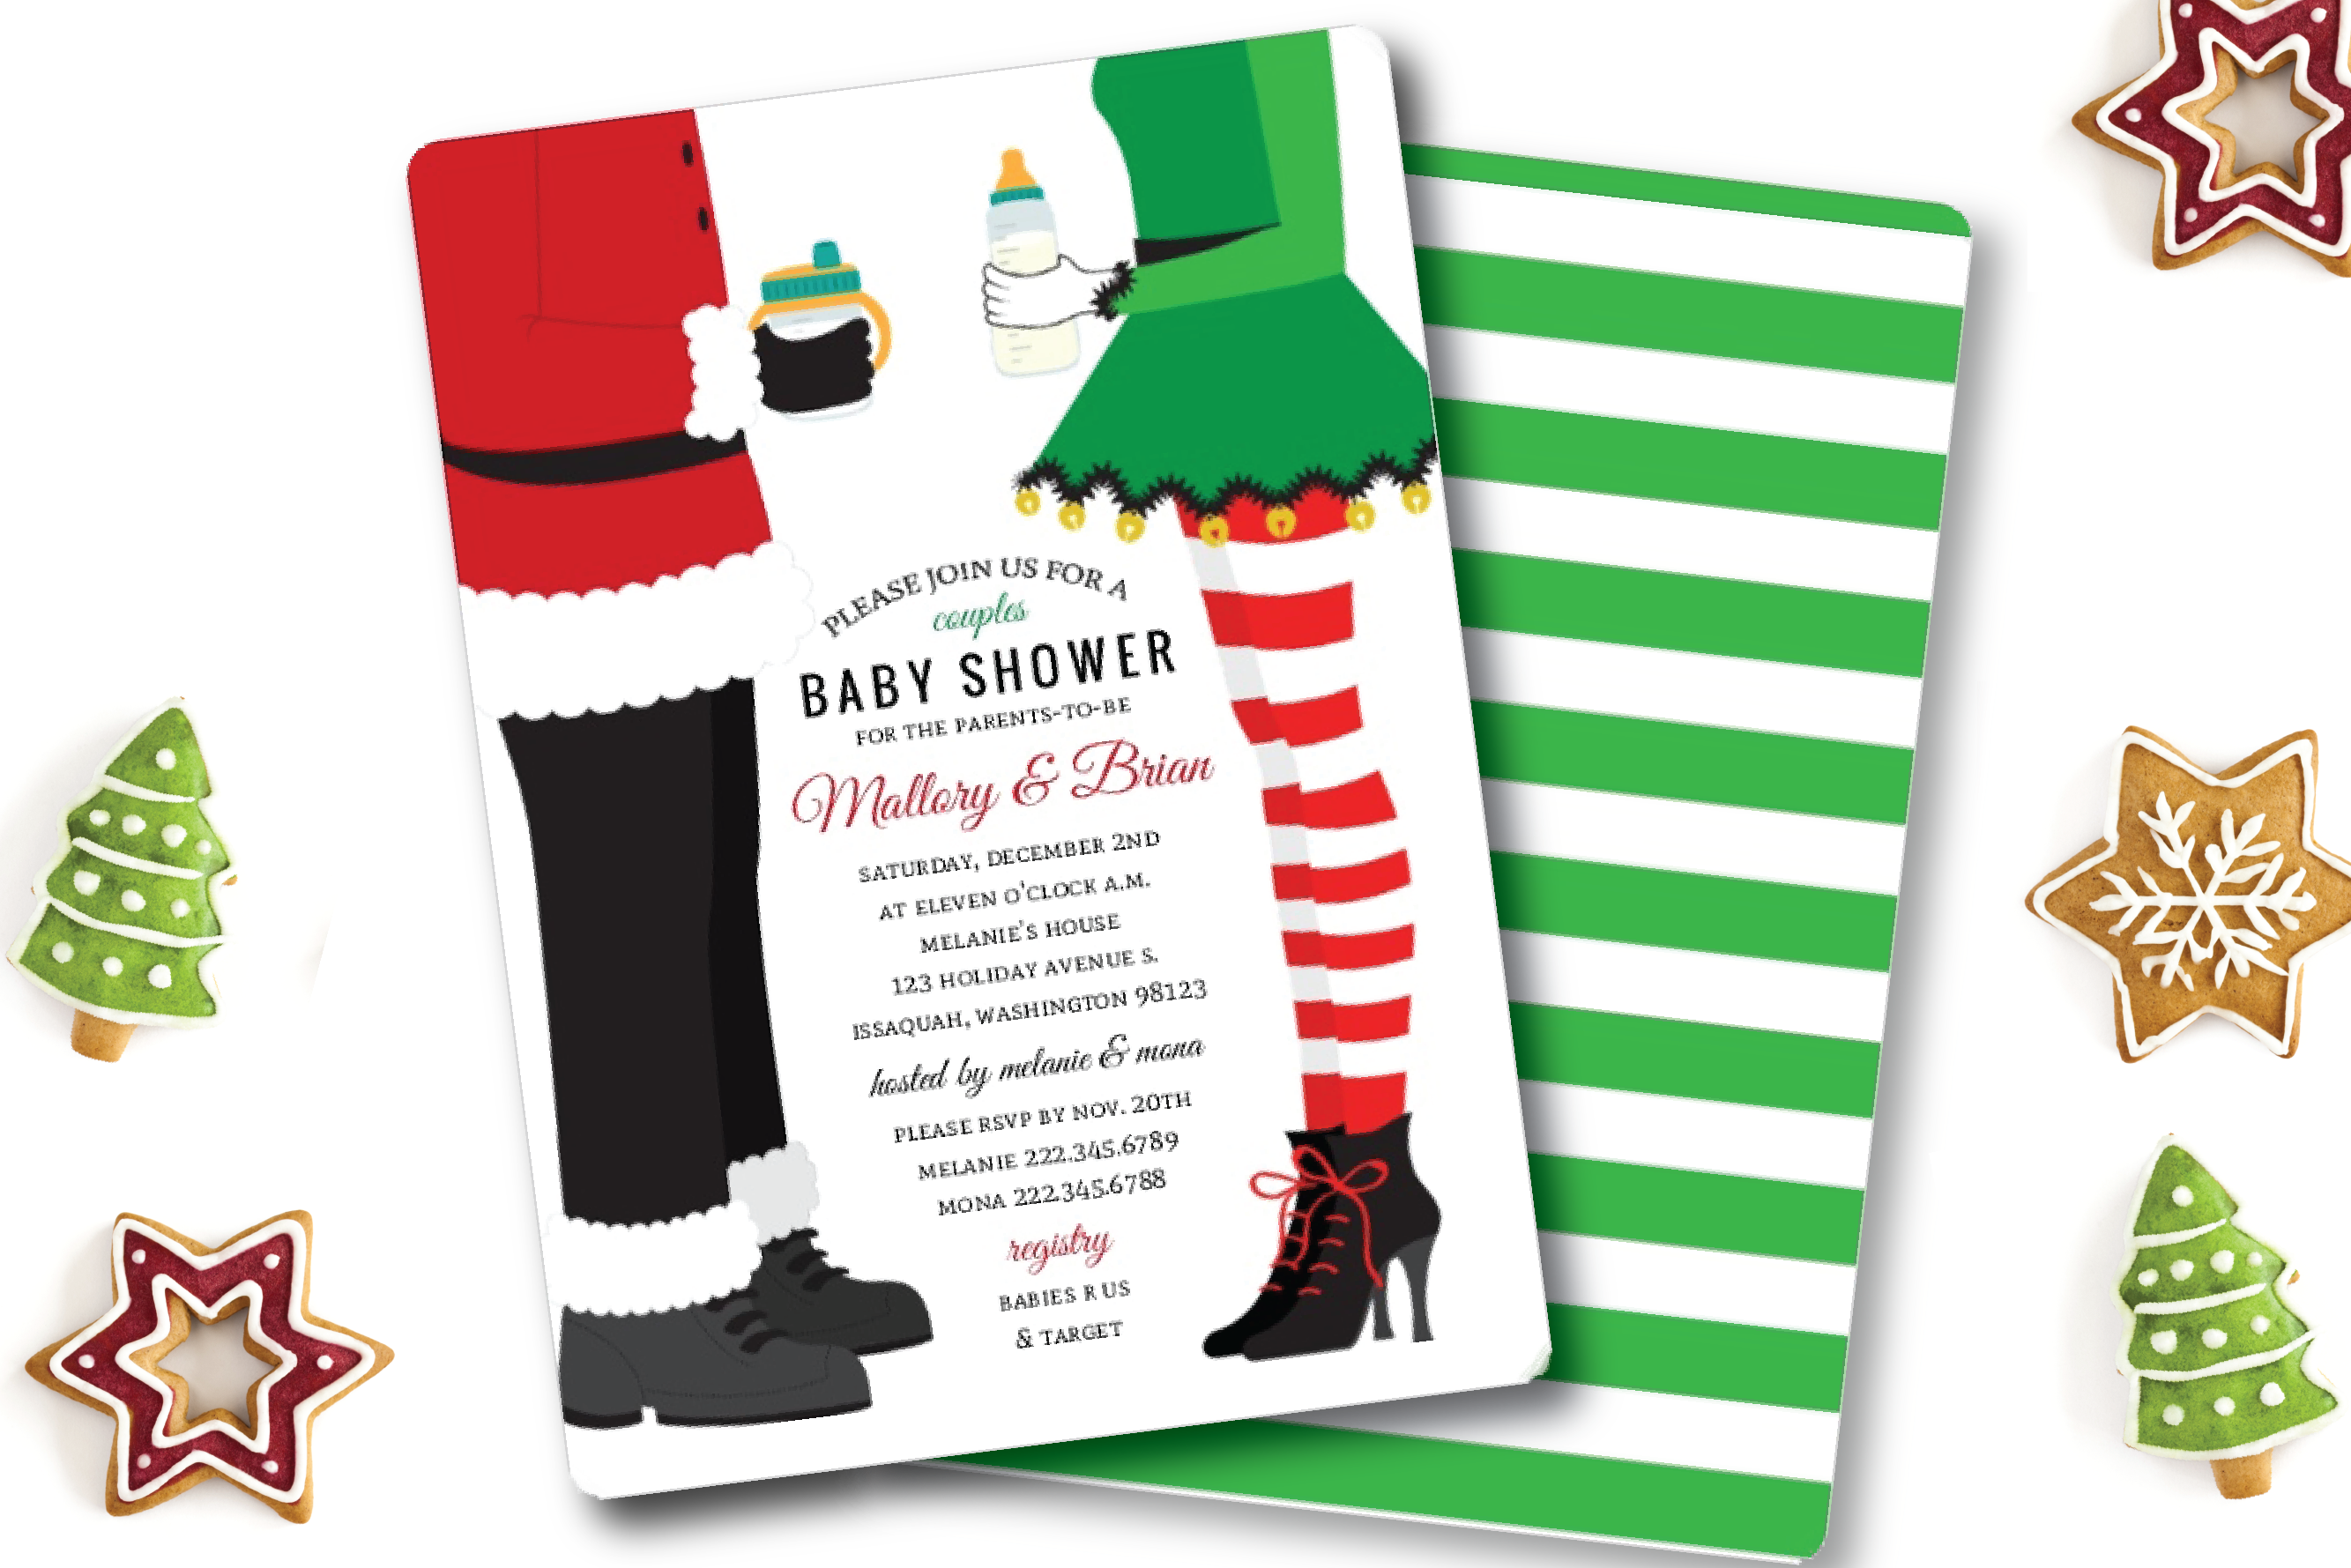 top 5 christmas themed baby shower ideas - Christmas Themed Baby Shower